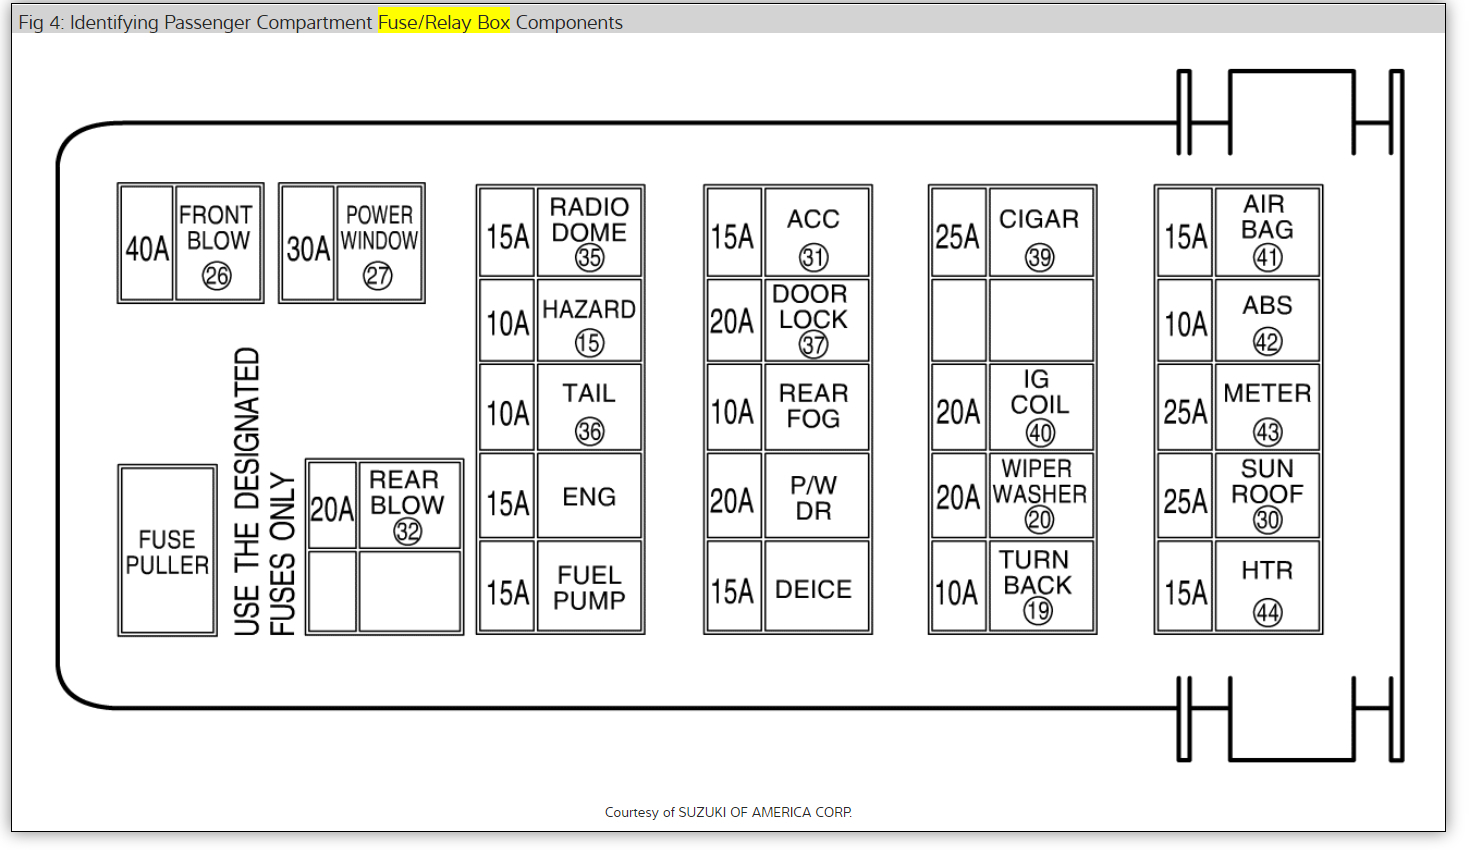 2004 suzuki xl7 fuse box diagram wiring diagrams database 2004 suzuki xl7 fuse box diagram